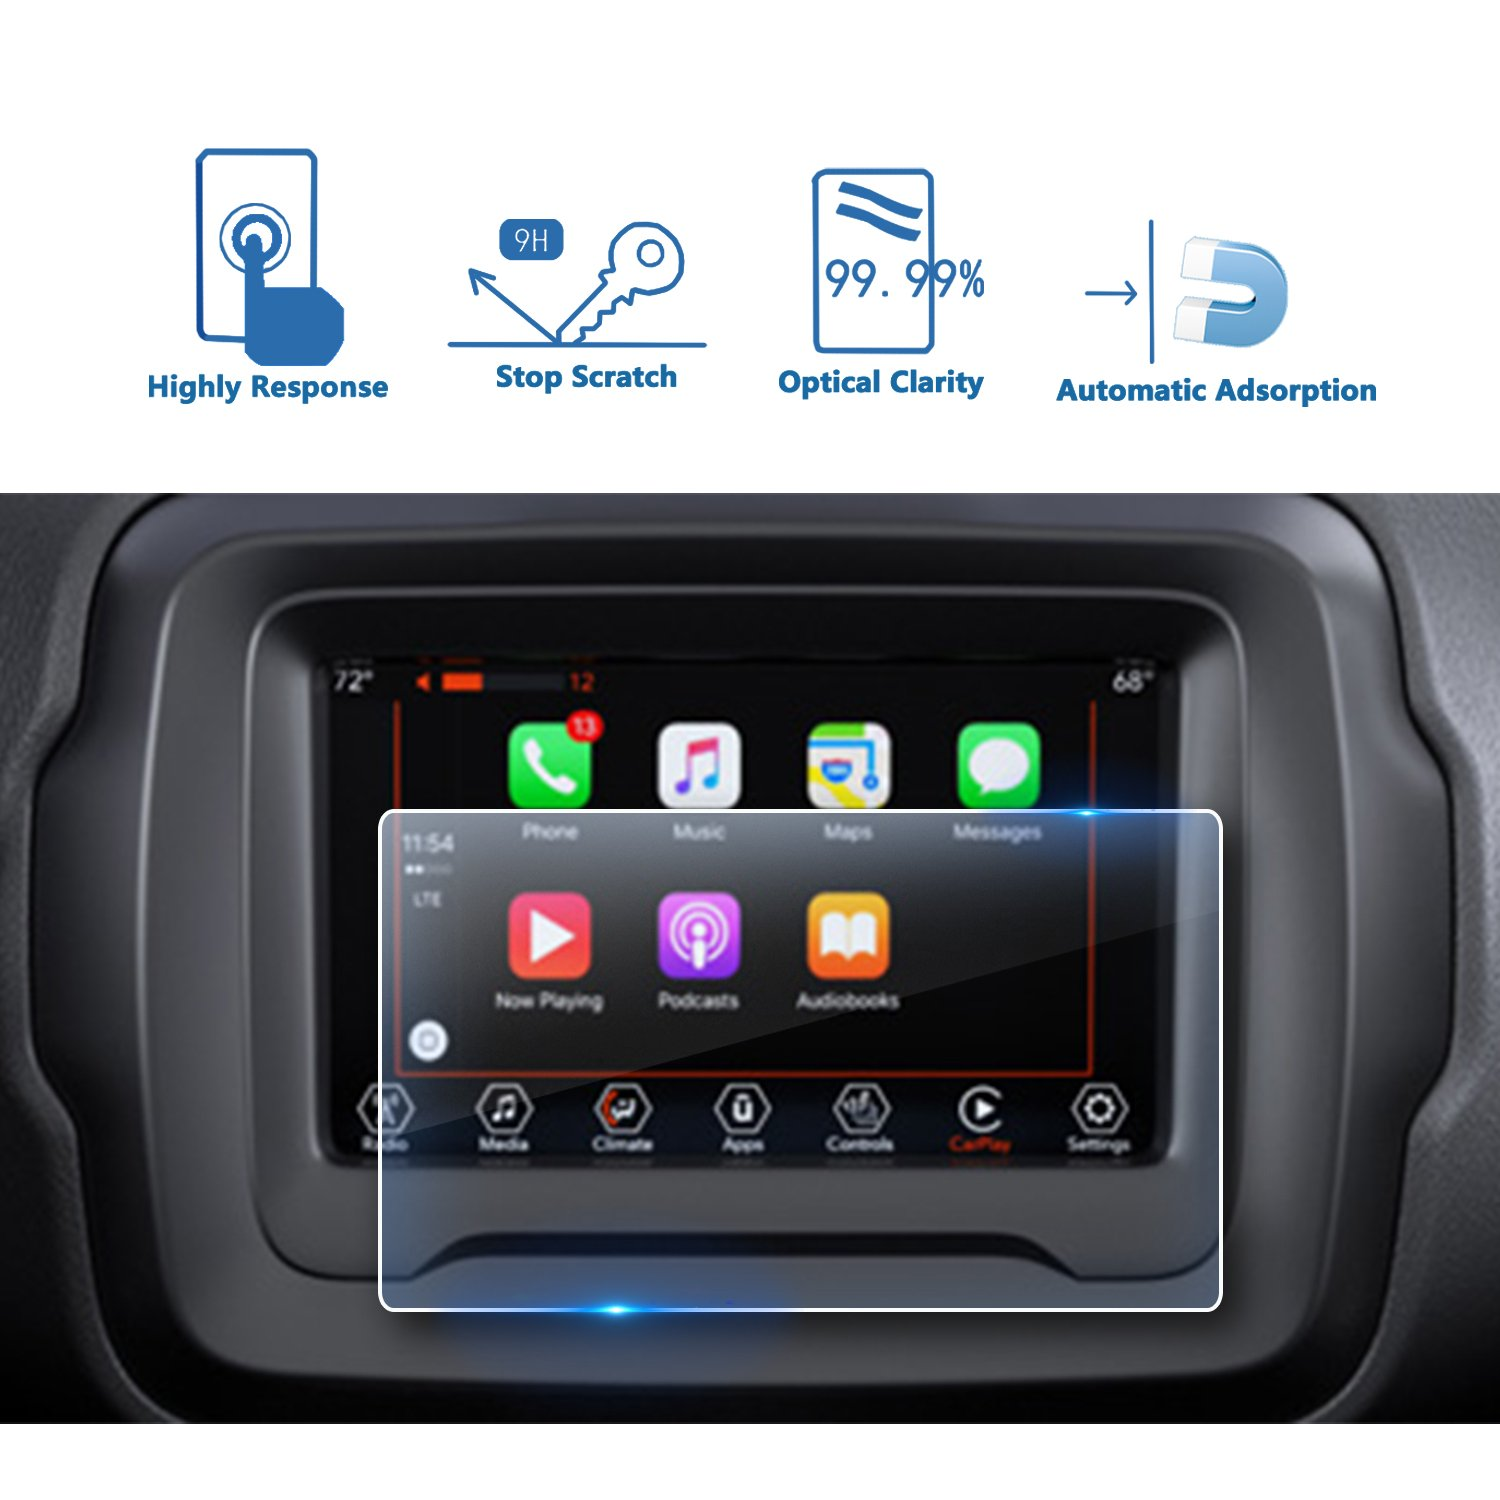 2018 Jeep Renegade 7 Inch Center Touch Screen Protector, LFOTPP Tempered Glass In-Dash Clear Screen Protector